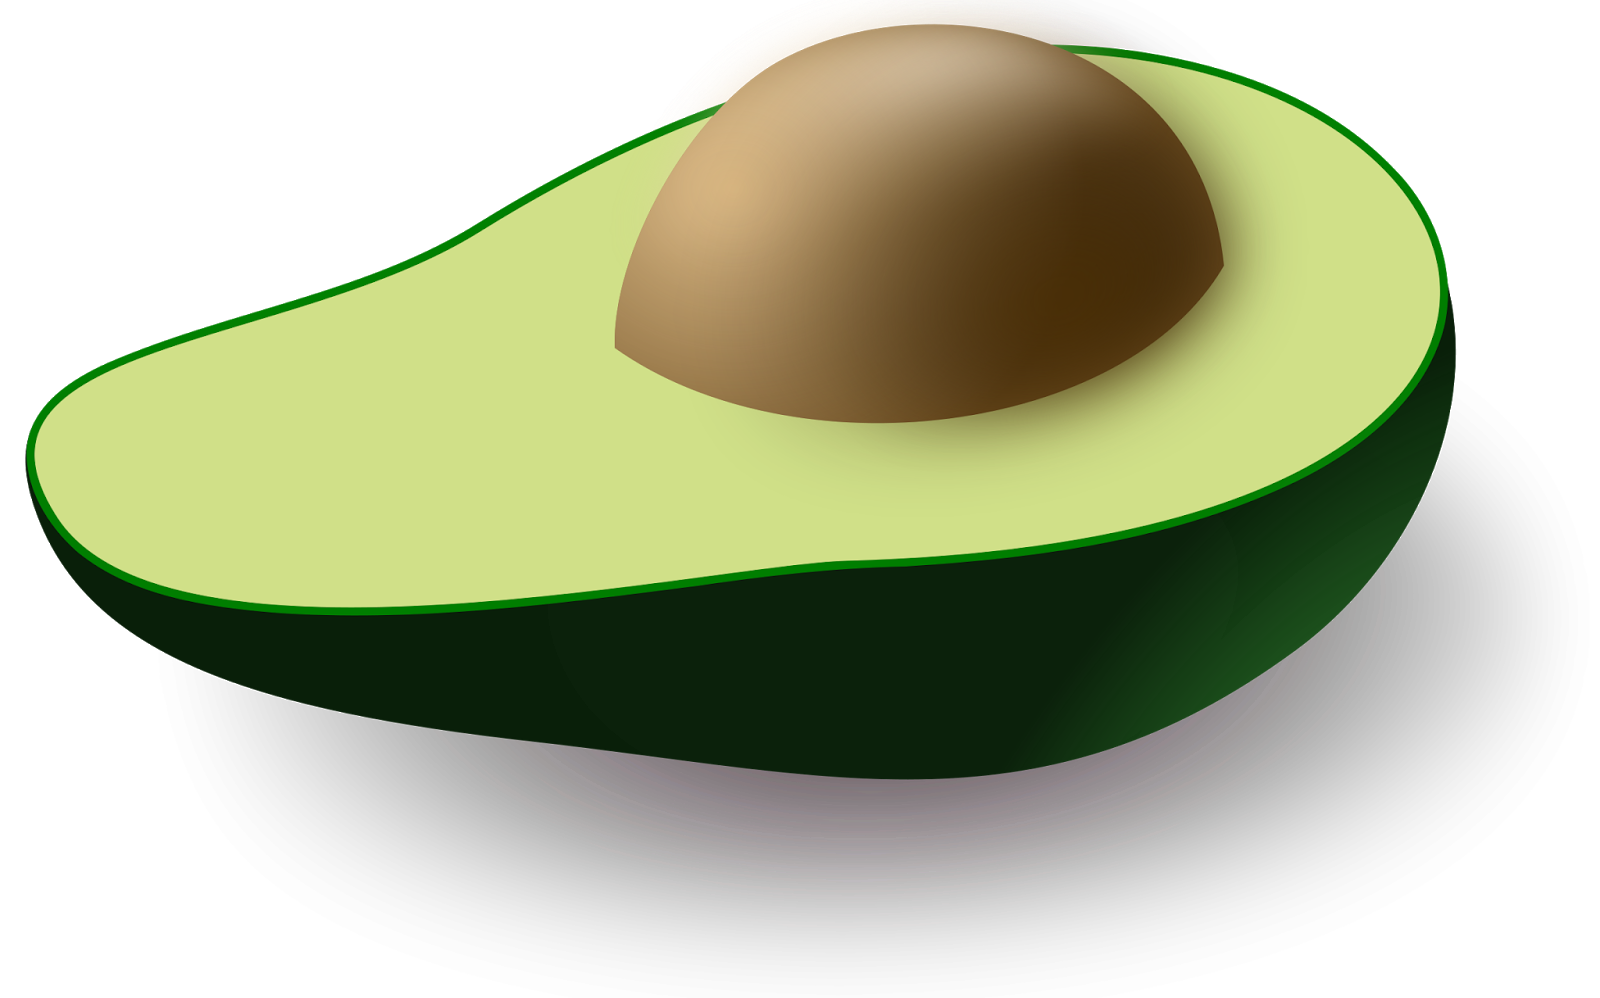 Avocado clipart chip guacamole And do on did Being